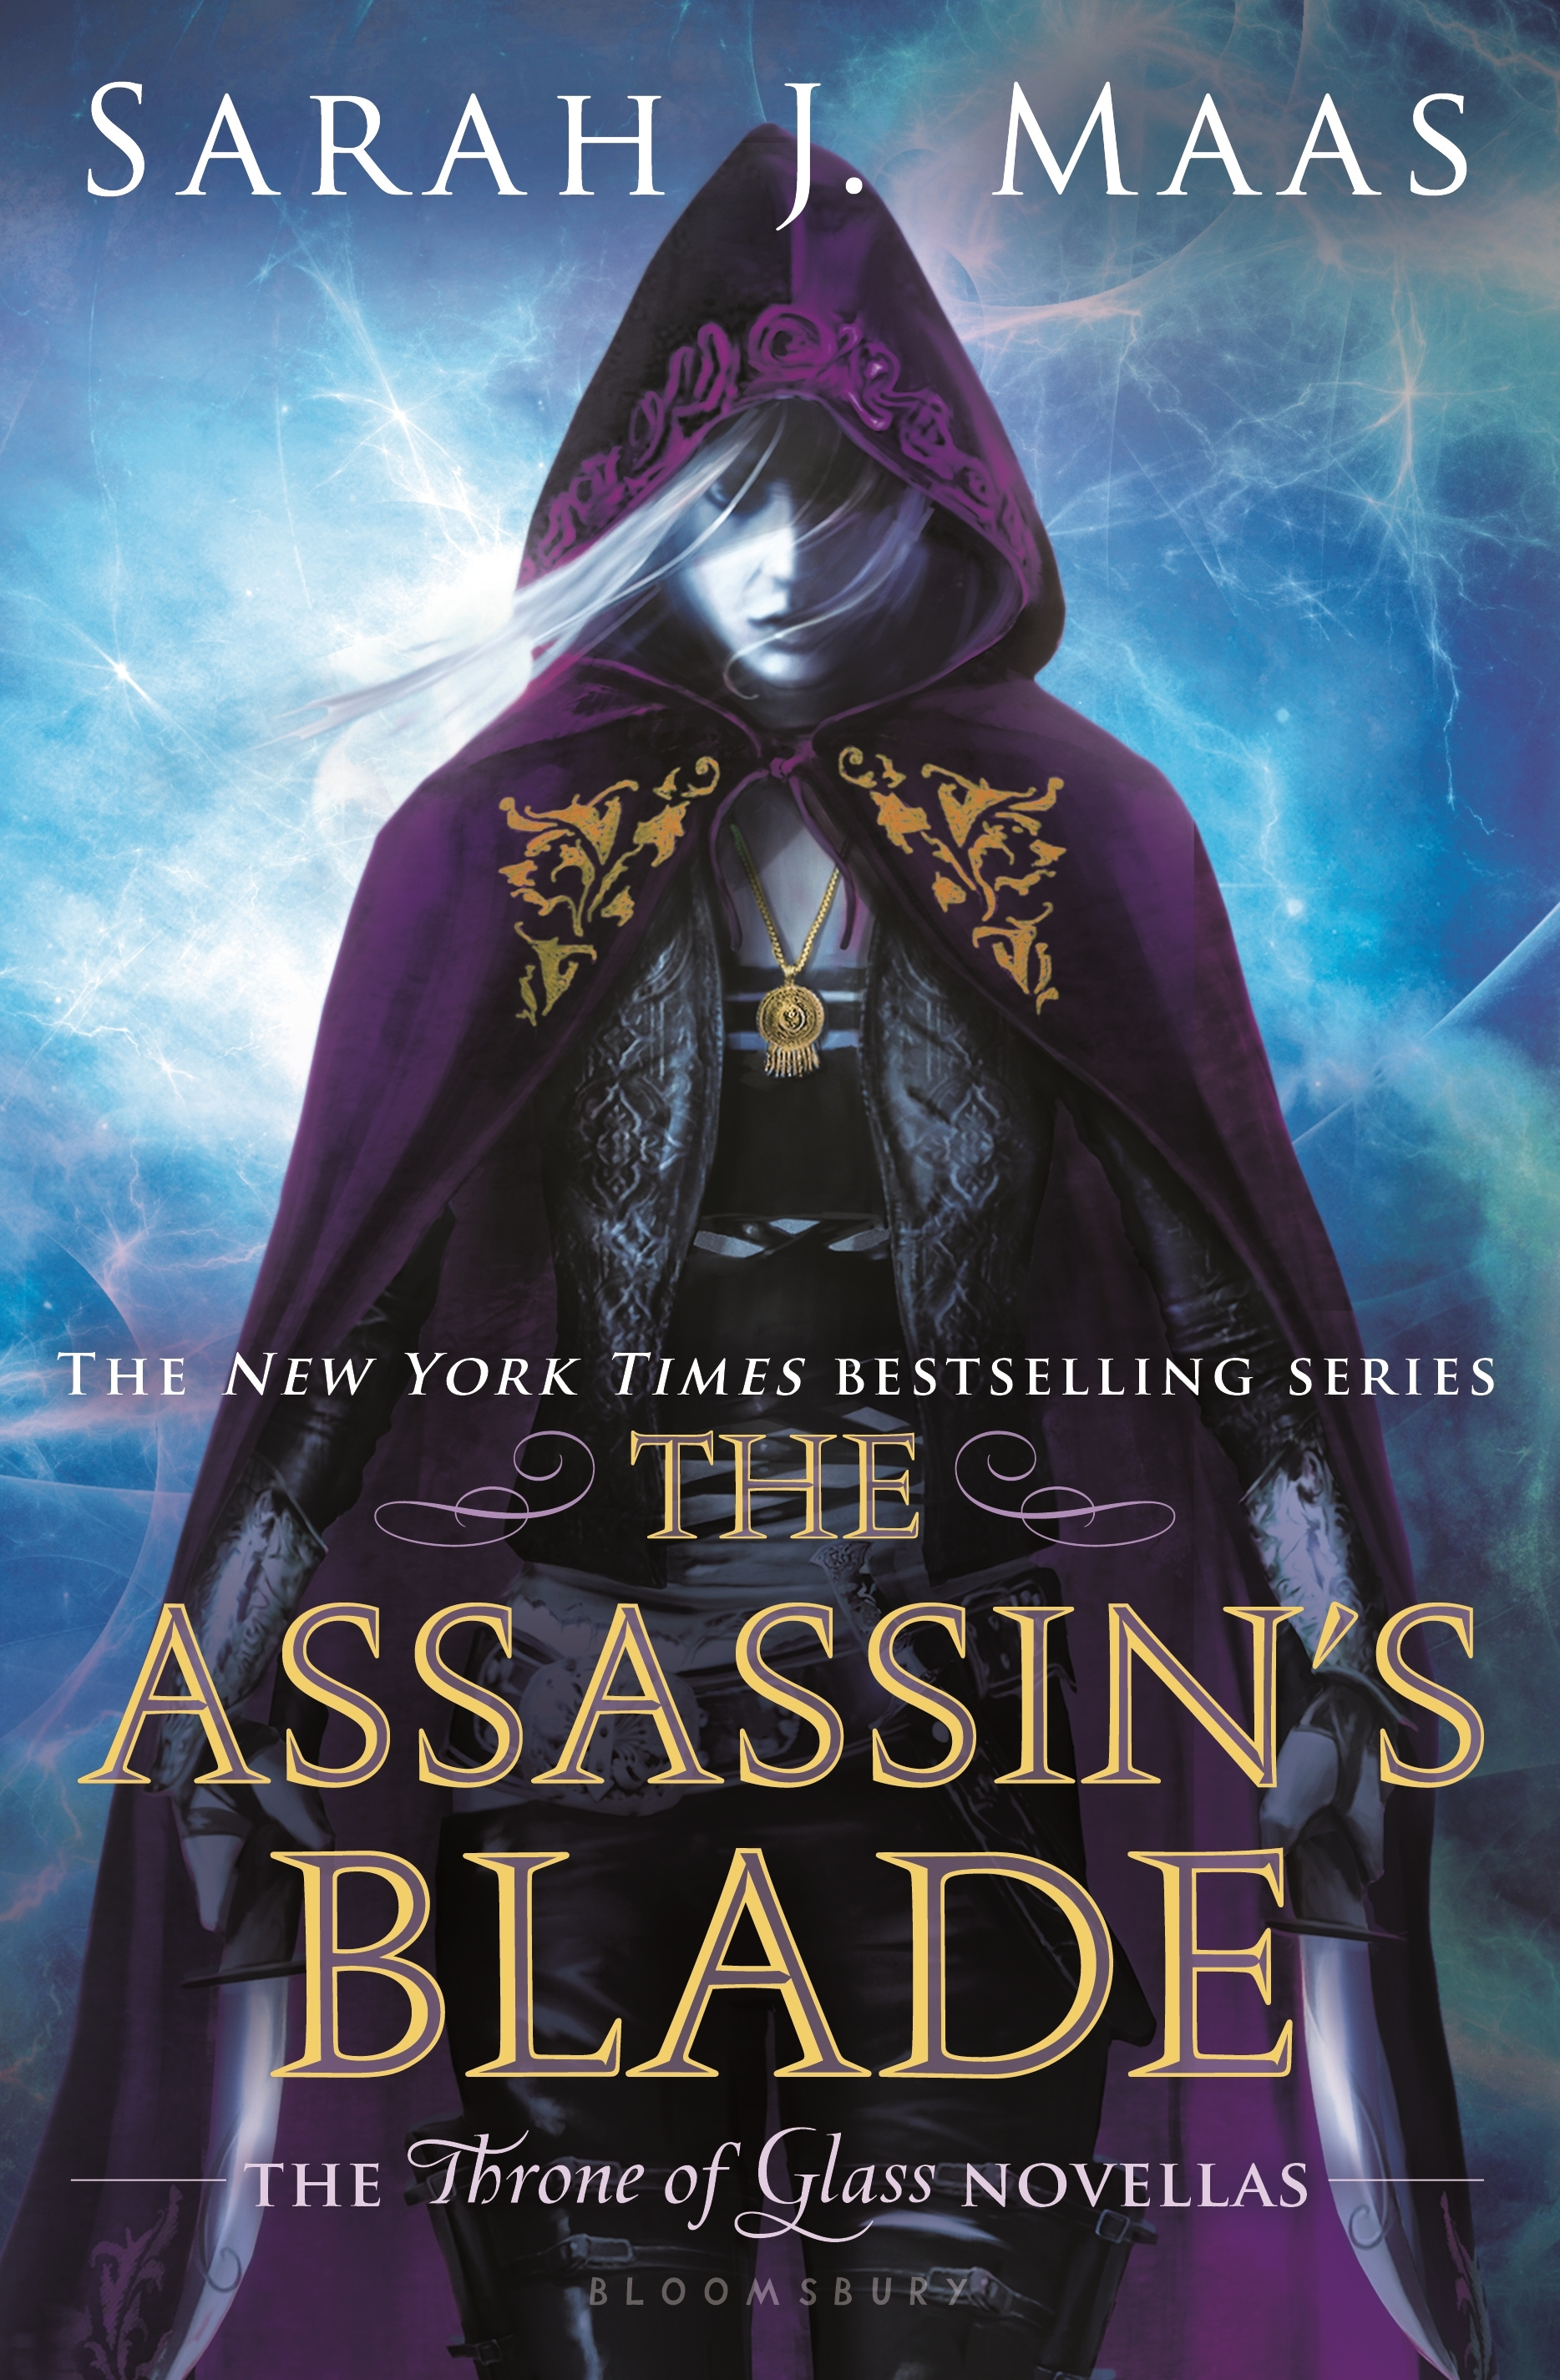 Witness Celaena's Rise And Downfall As Adarlan's Assassin In This  Collection Of Five Prequel Novellas To The New York Times Bestselling Throne  Of Glass